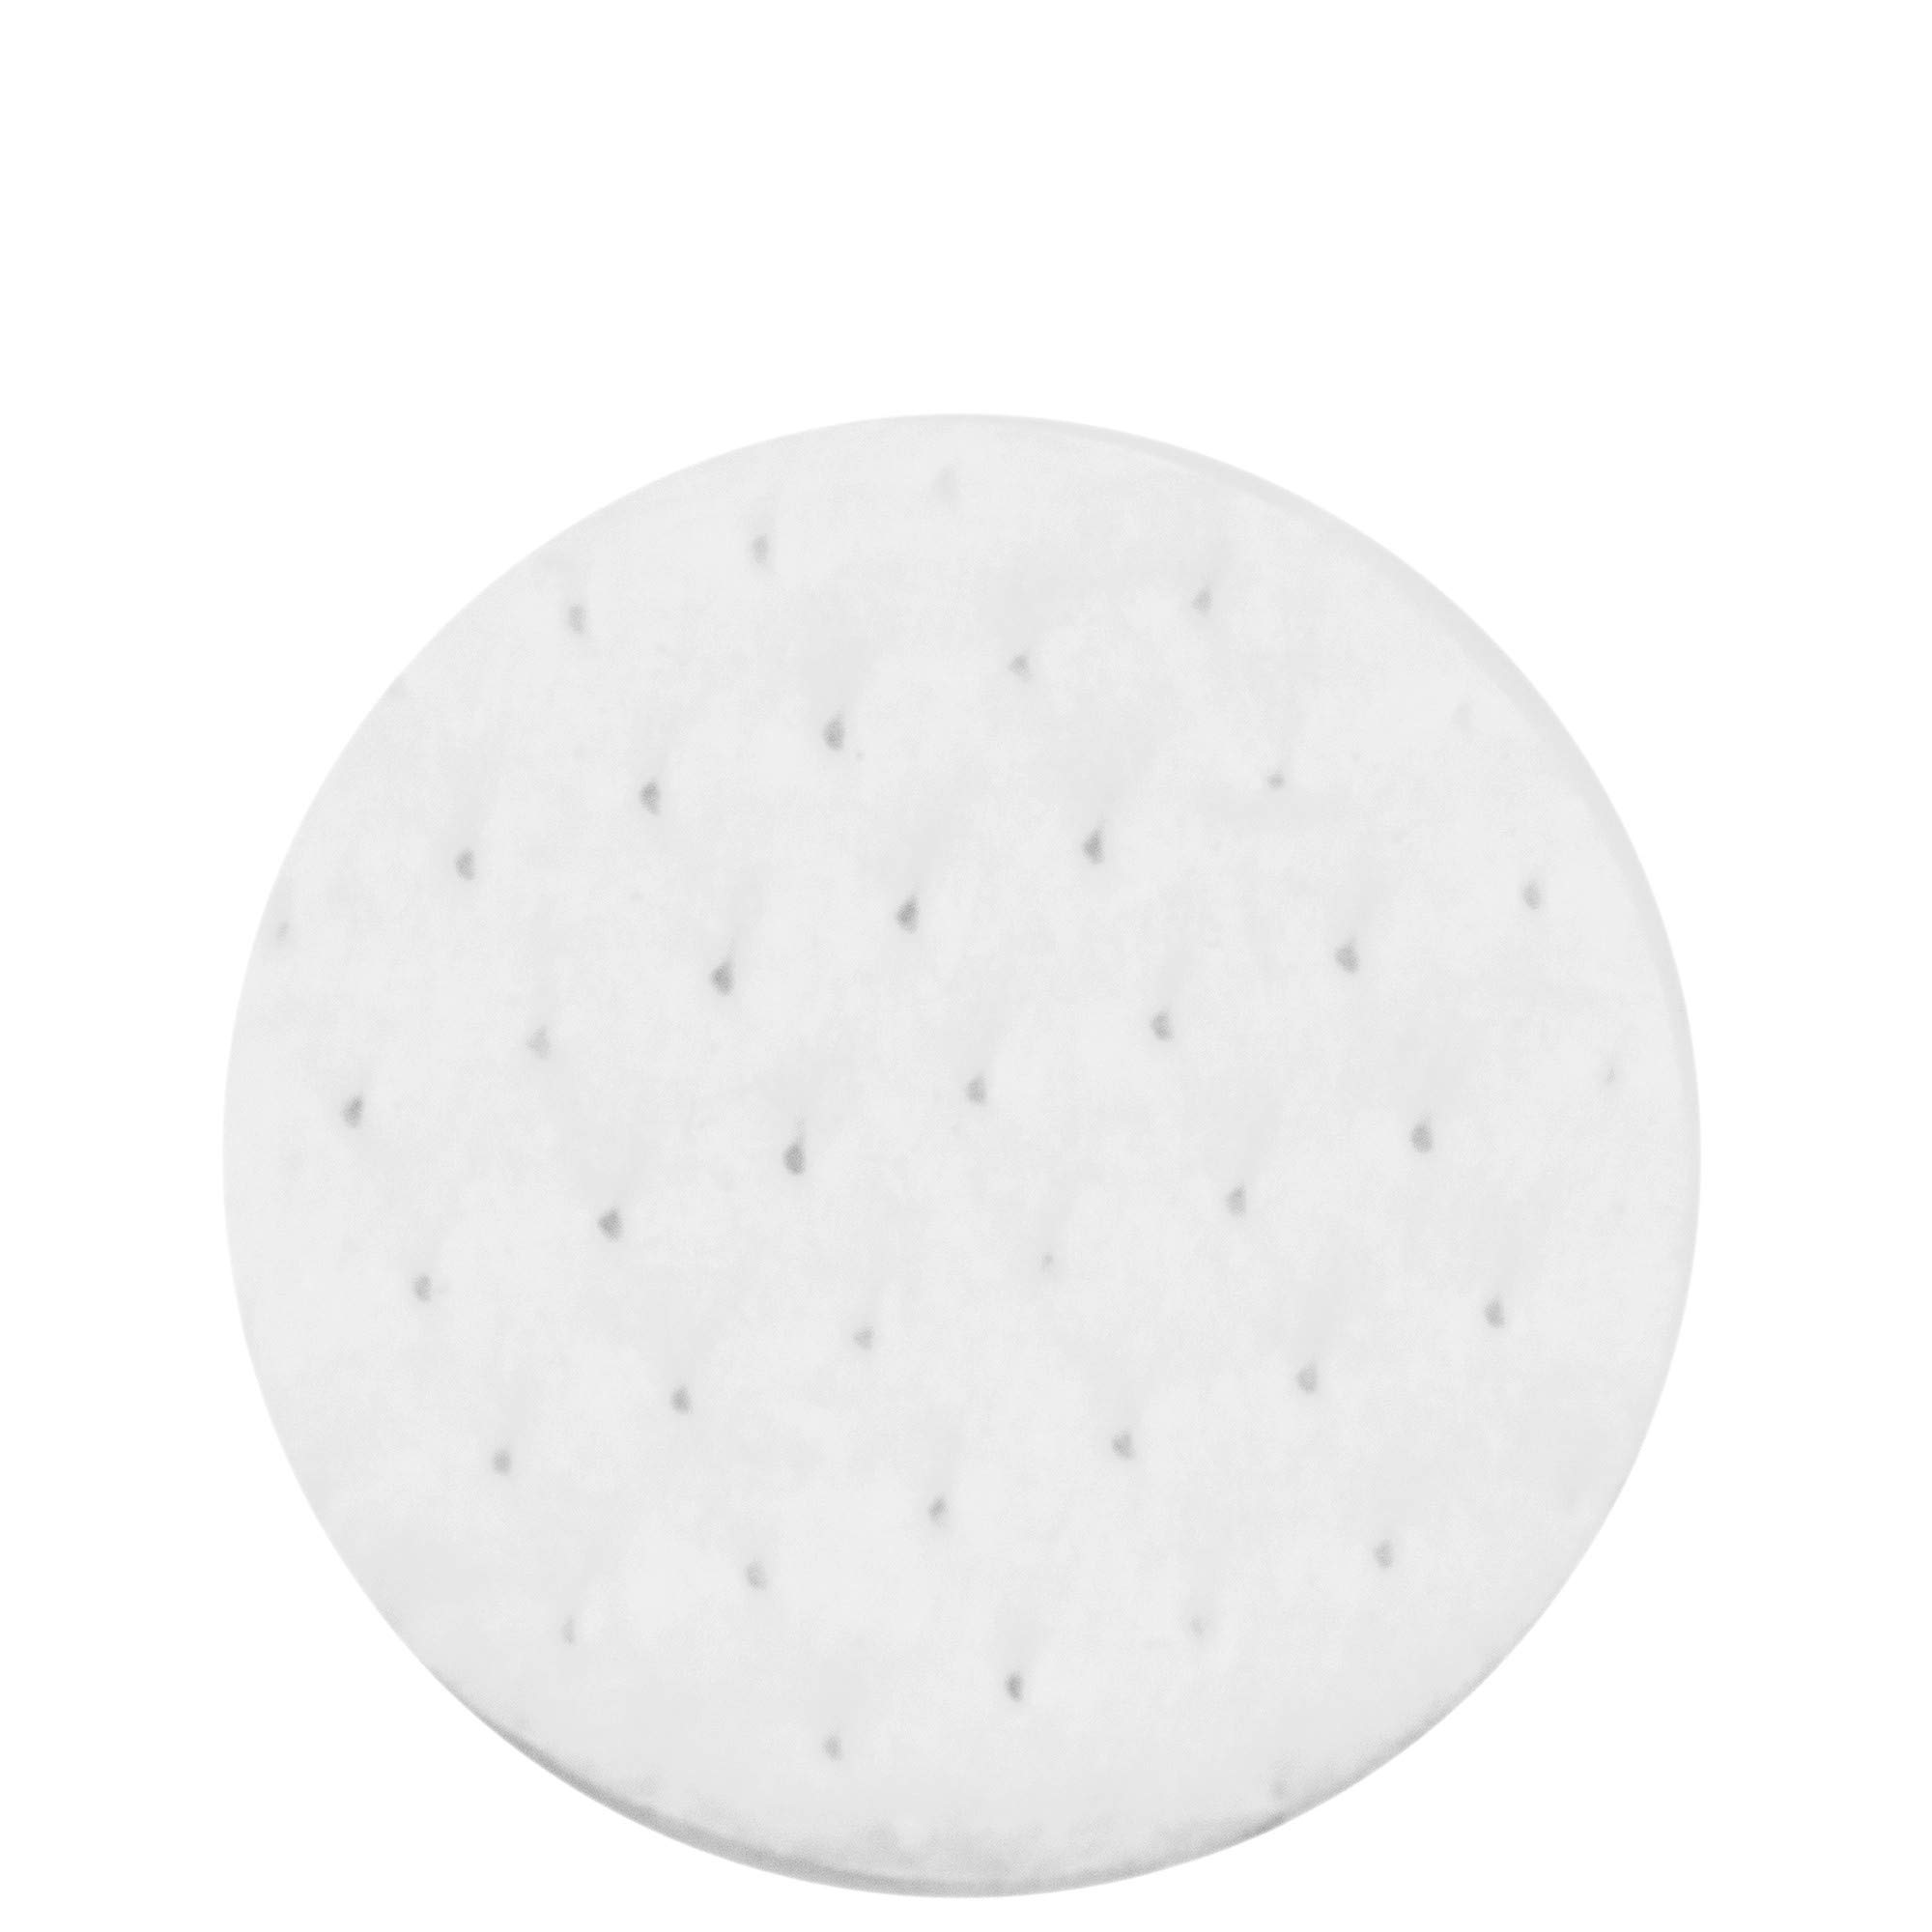 DecorRack Cotton Rounds, 1000 Count Makeup Remover and Facial Cleansing Round Cotton Pads, Waffle Textured Hypoallergenic 100% Natural Cotton Wipes (1000 Pack)